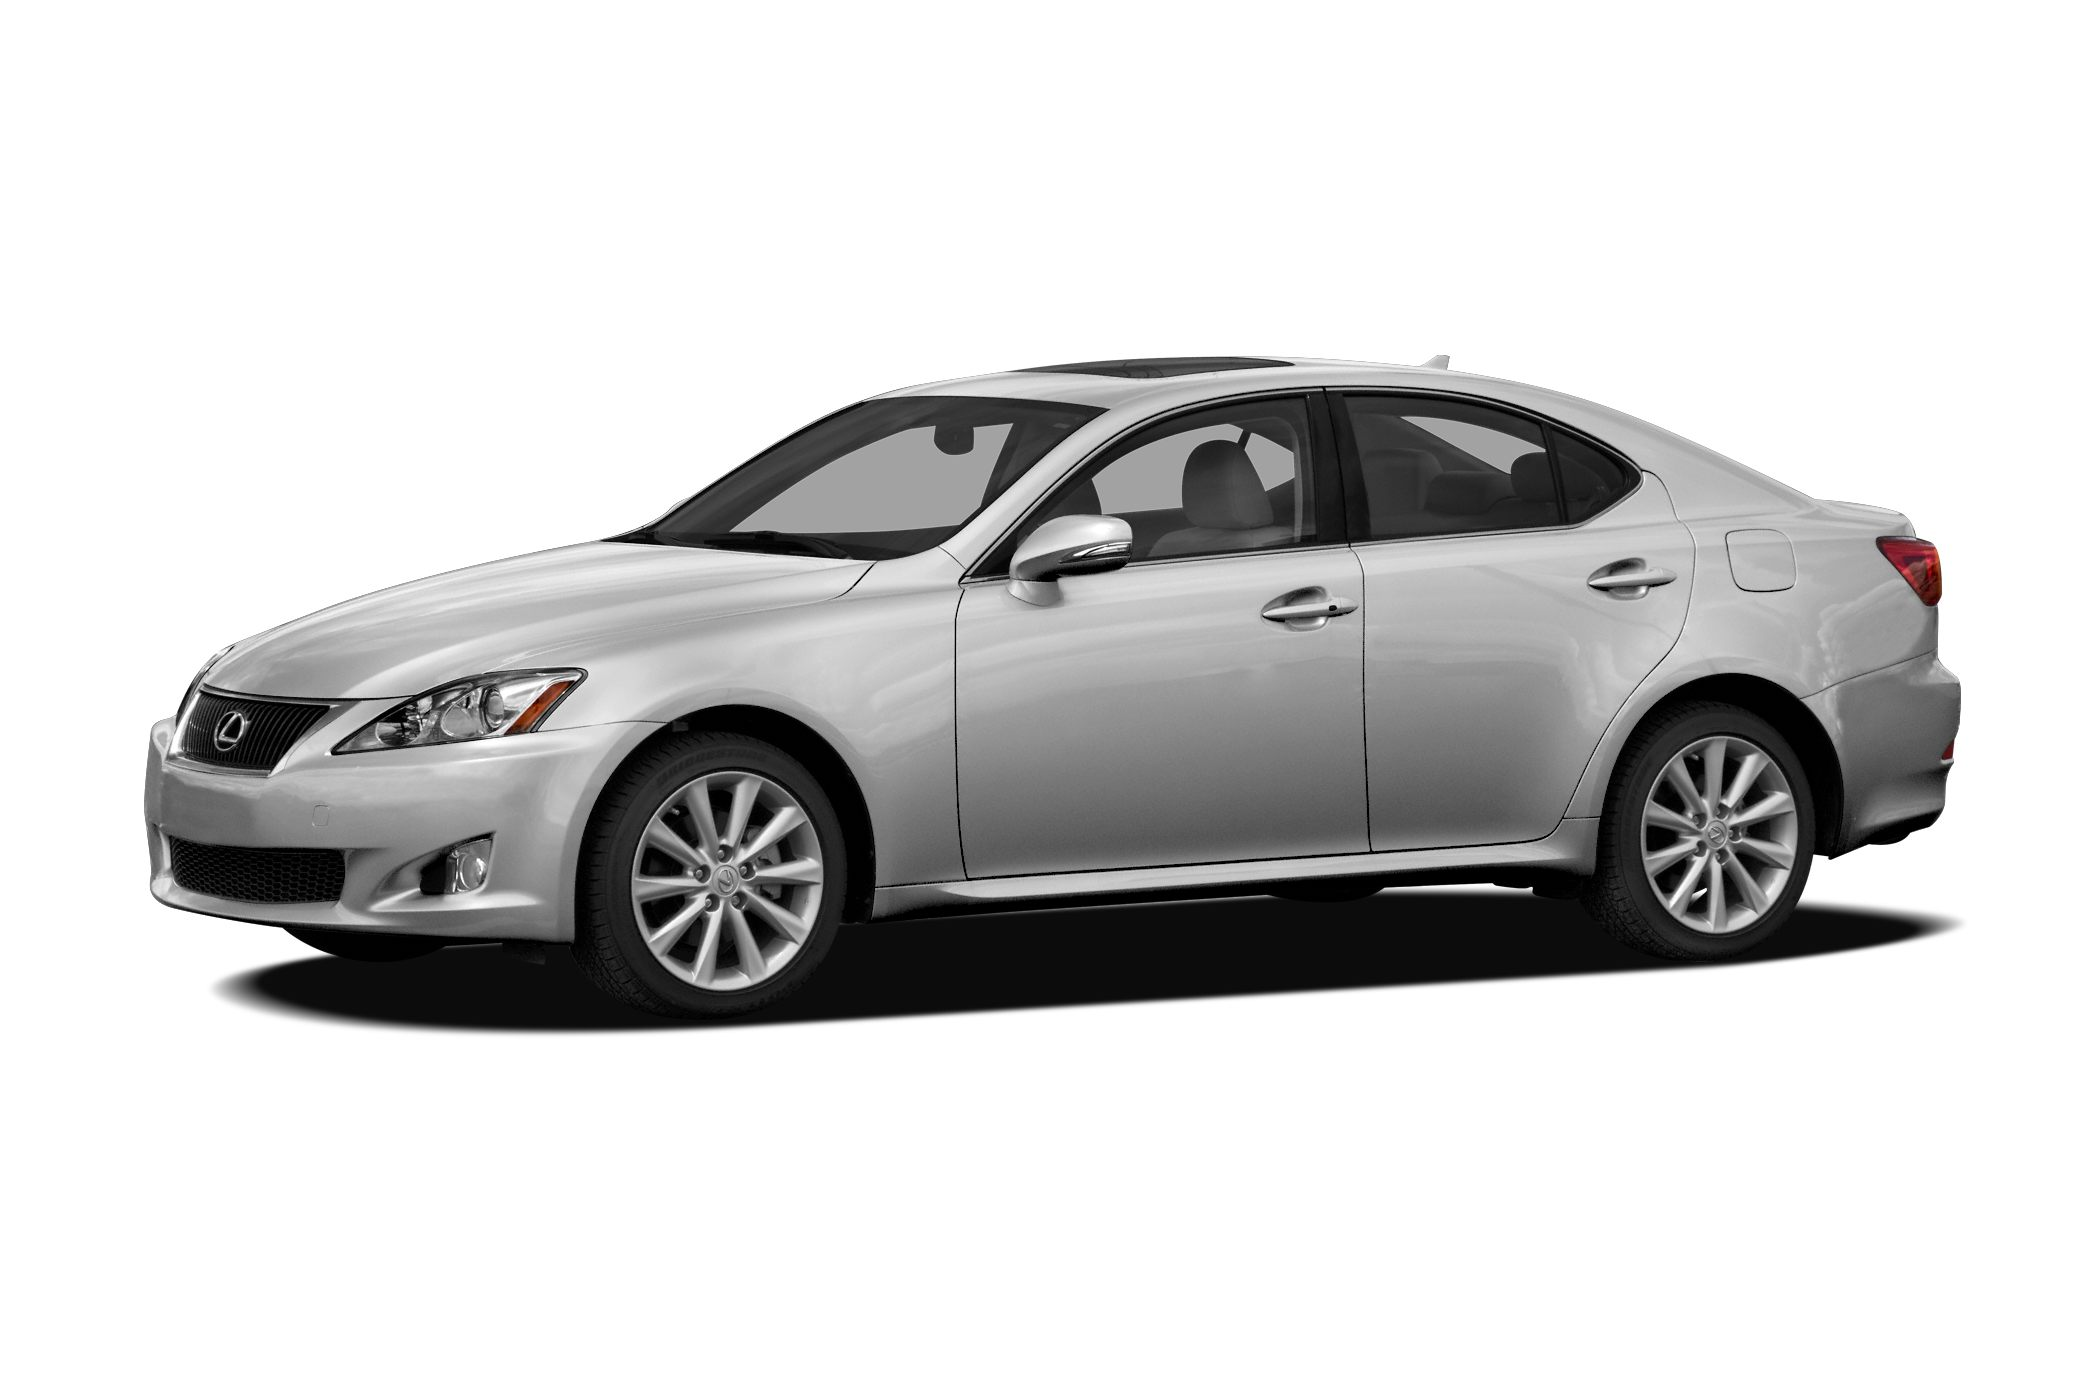 2009 Lexus IS 250 Base Terra Cotta Leather LEATHER and POWER SUNROOFMOONROOF Join us at Chevro